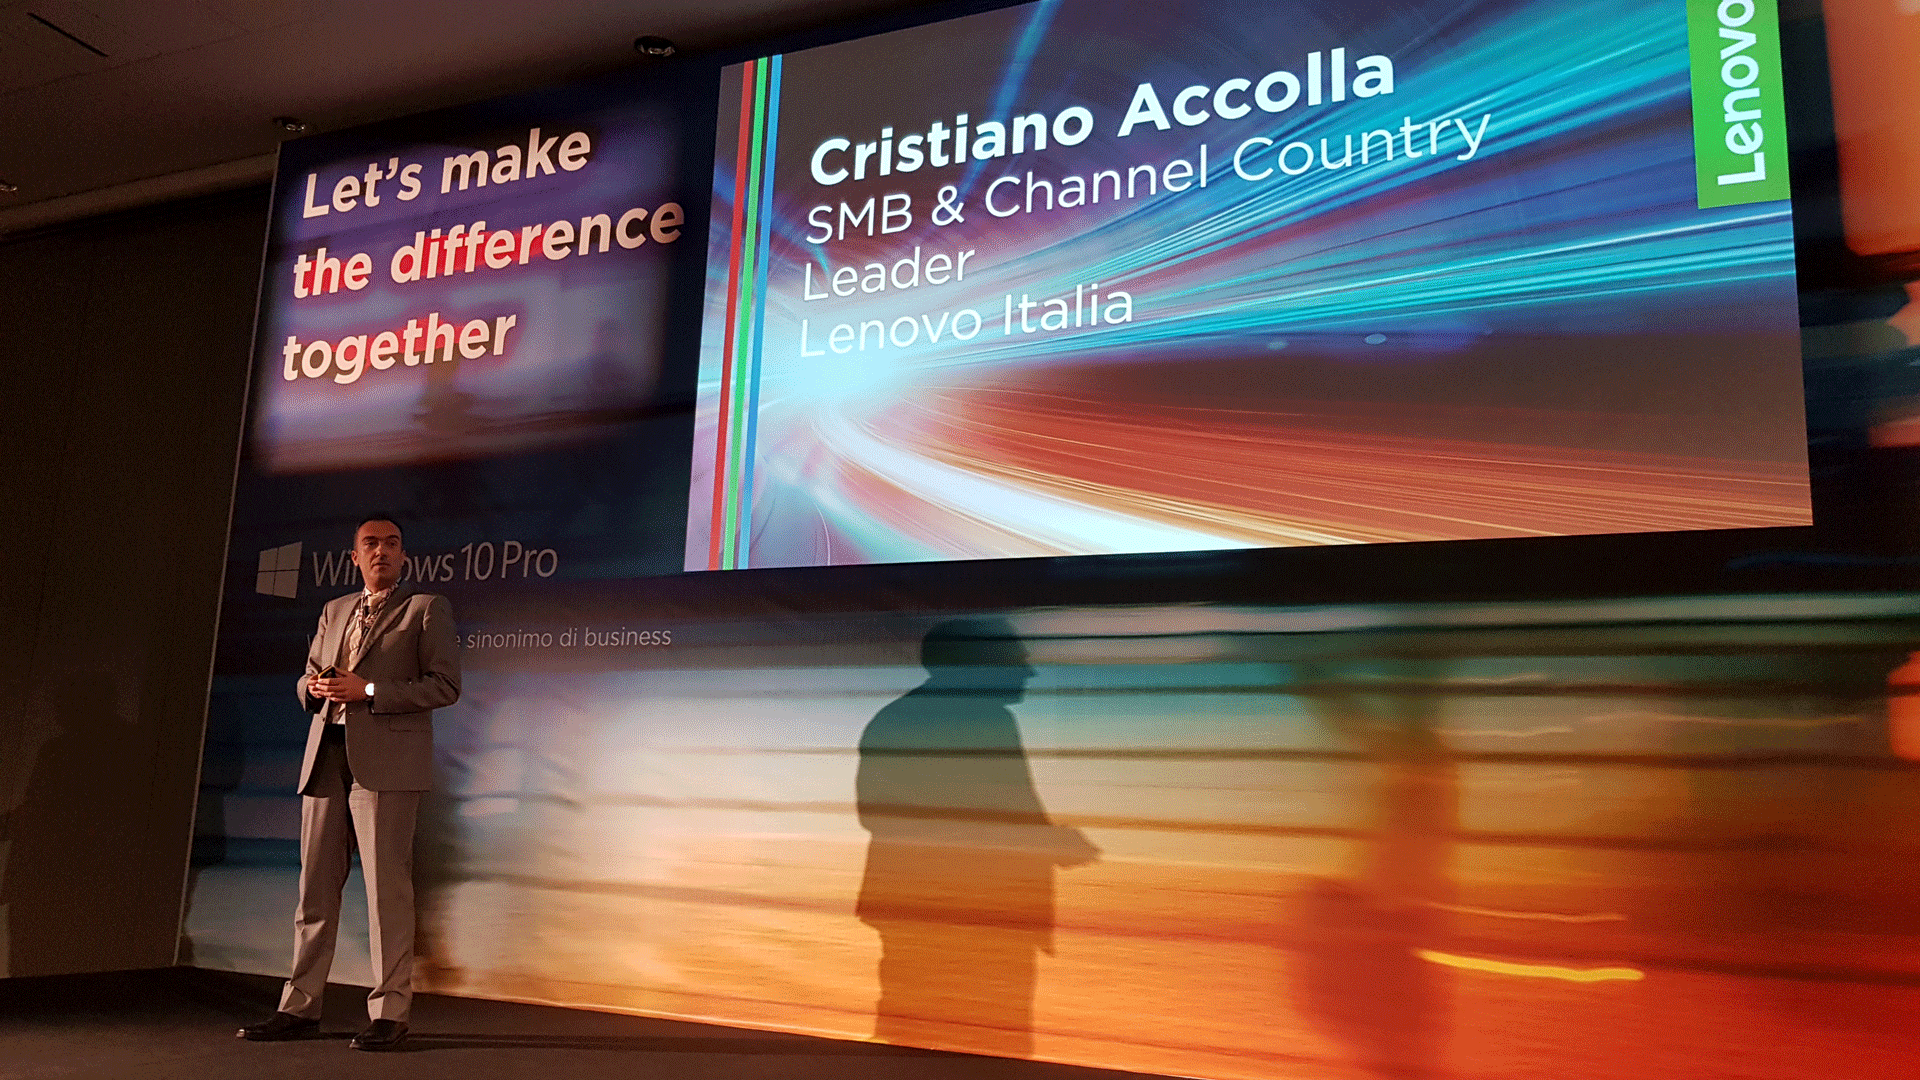 Kick-off Lenovo 2018 - Cristiano Accolla, SMB & Channel Country Leader di Lenovo Italia